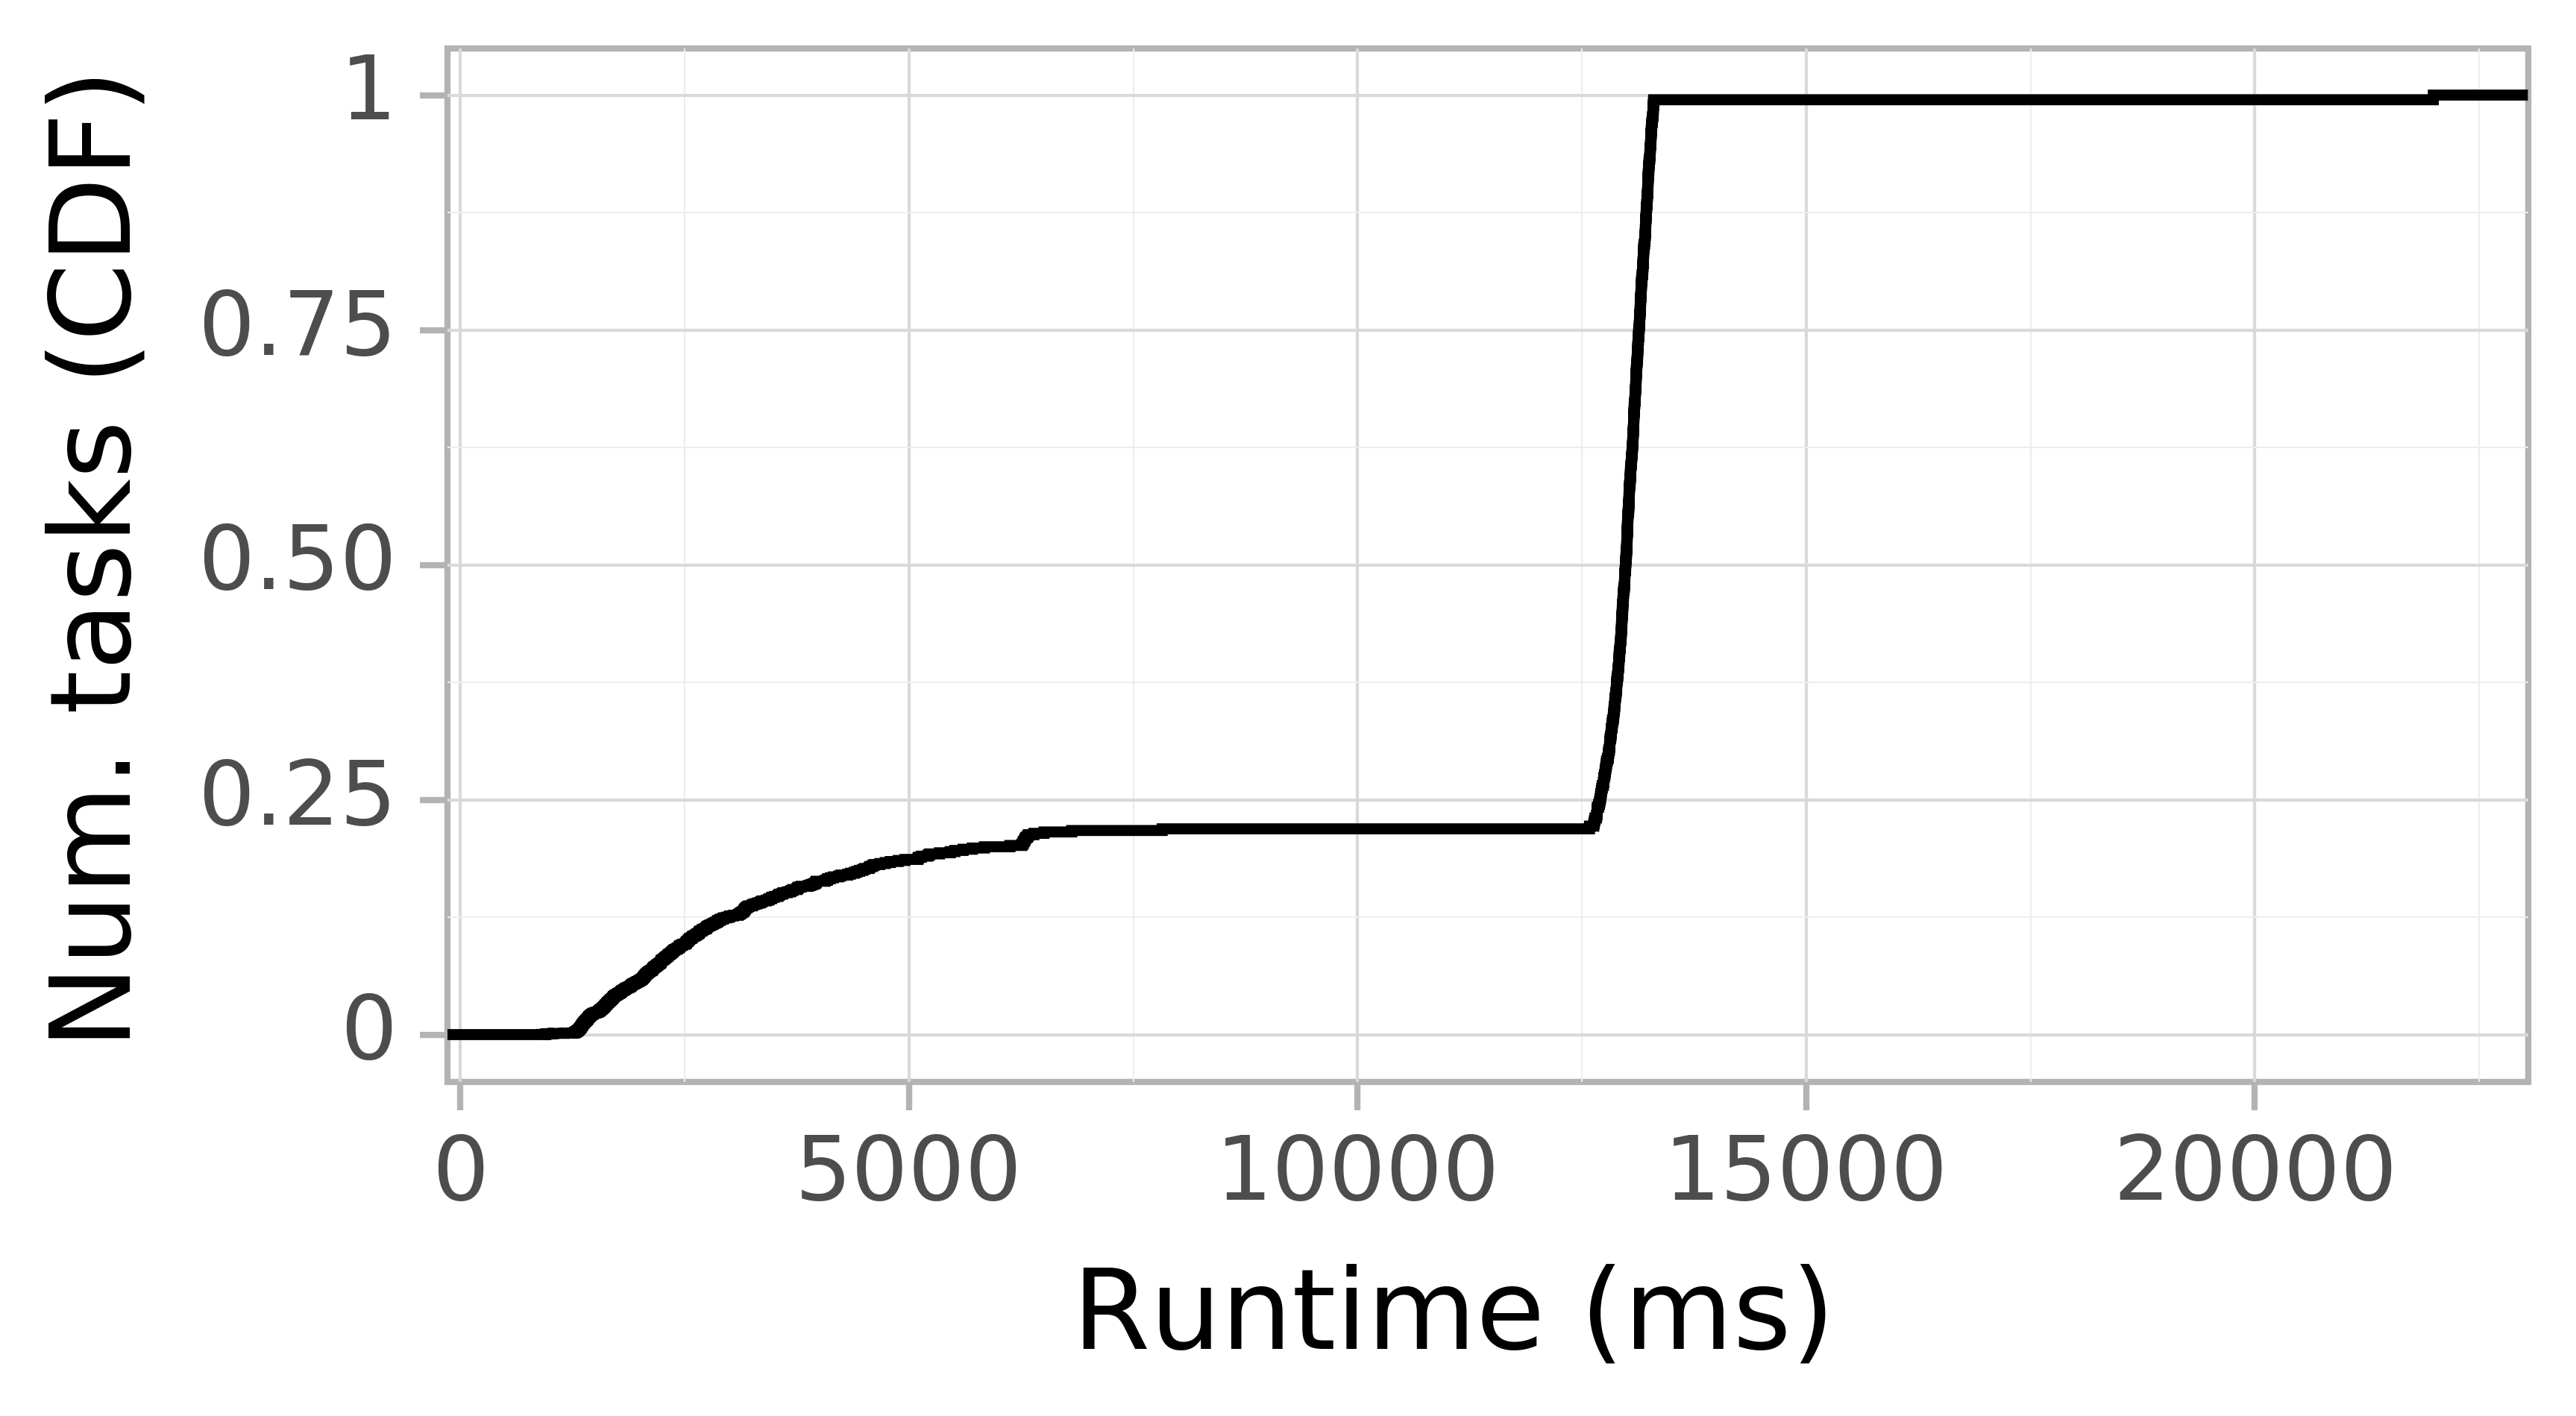 Task runtime CDF graph for the askalon-new_ee21 trace.